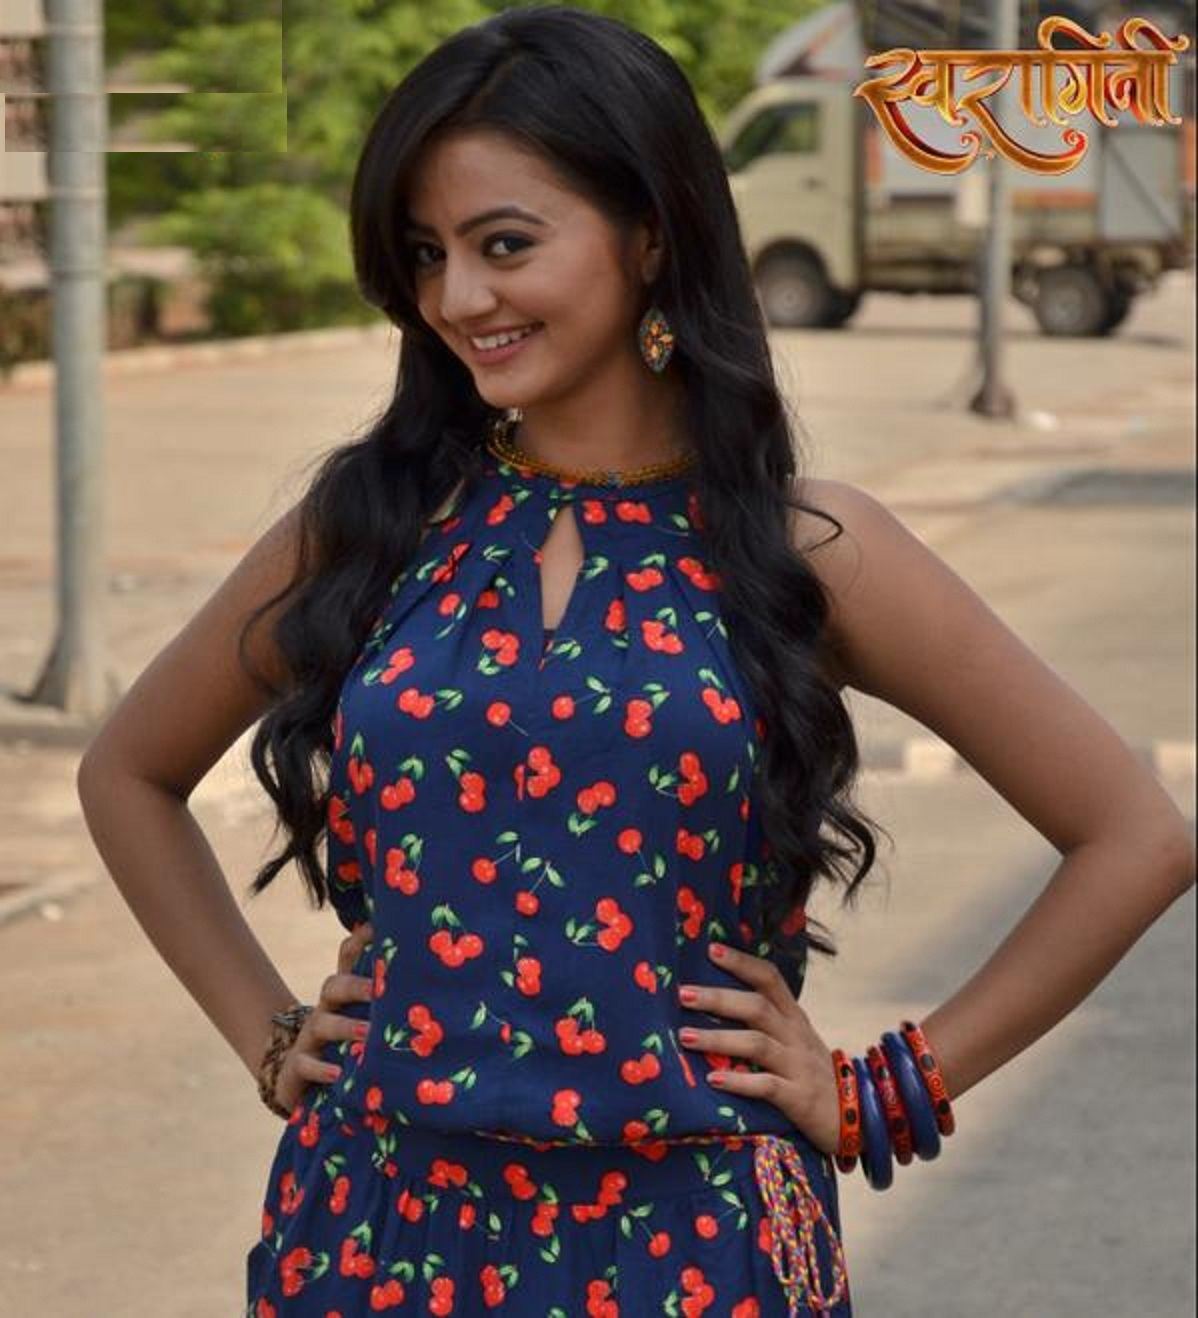 helly shah hot  u0026 sexy look in bikini images downloads